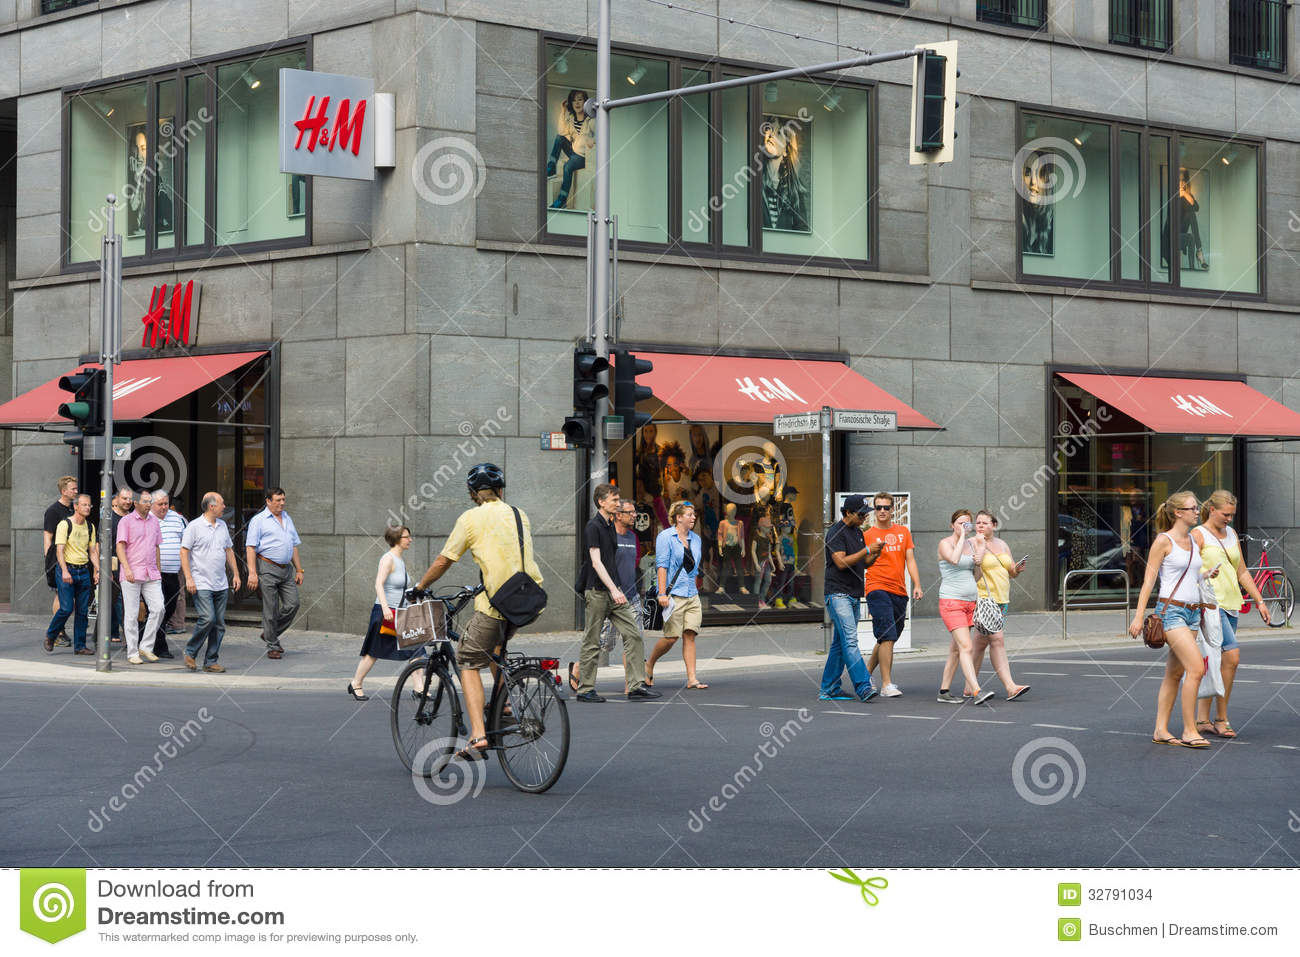 store on Friedrichstrasse. H&M Hennes & Mauritz AB is a Swedish